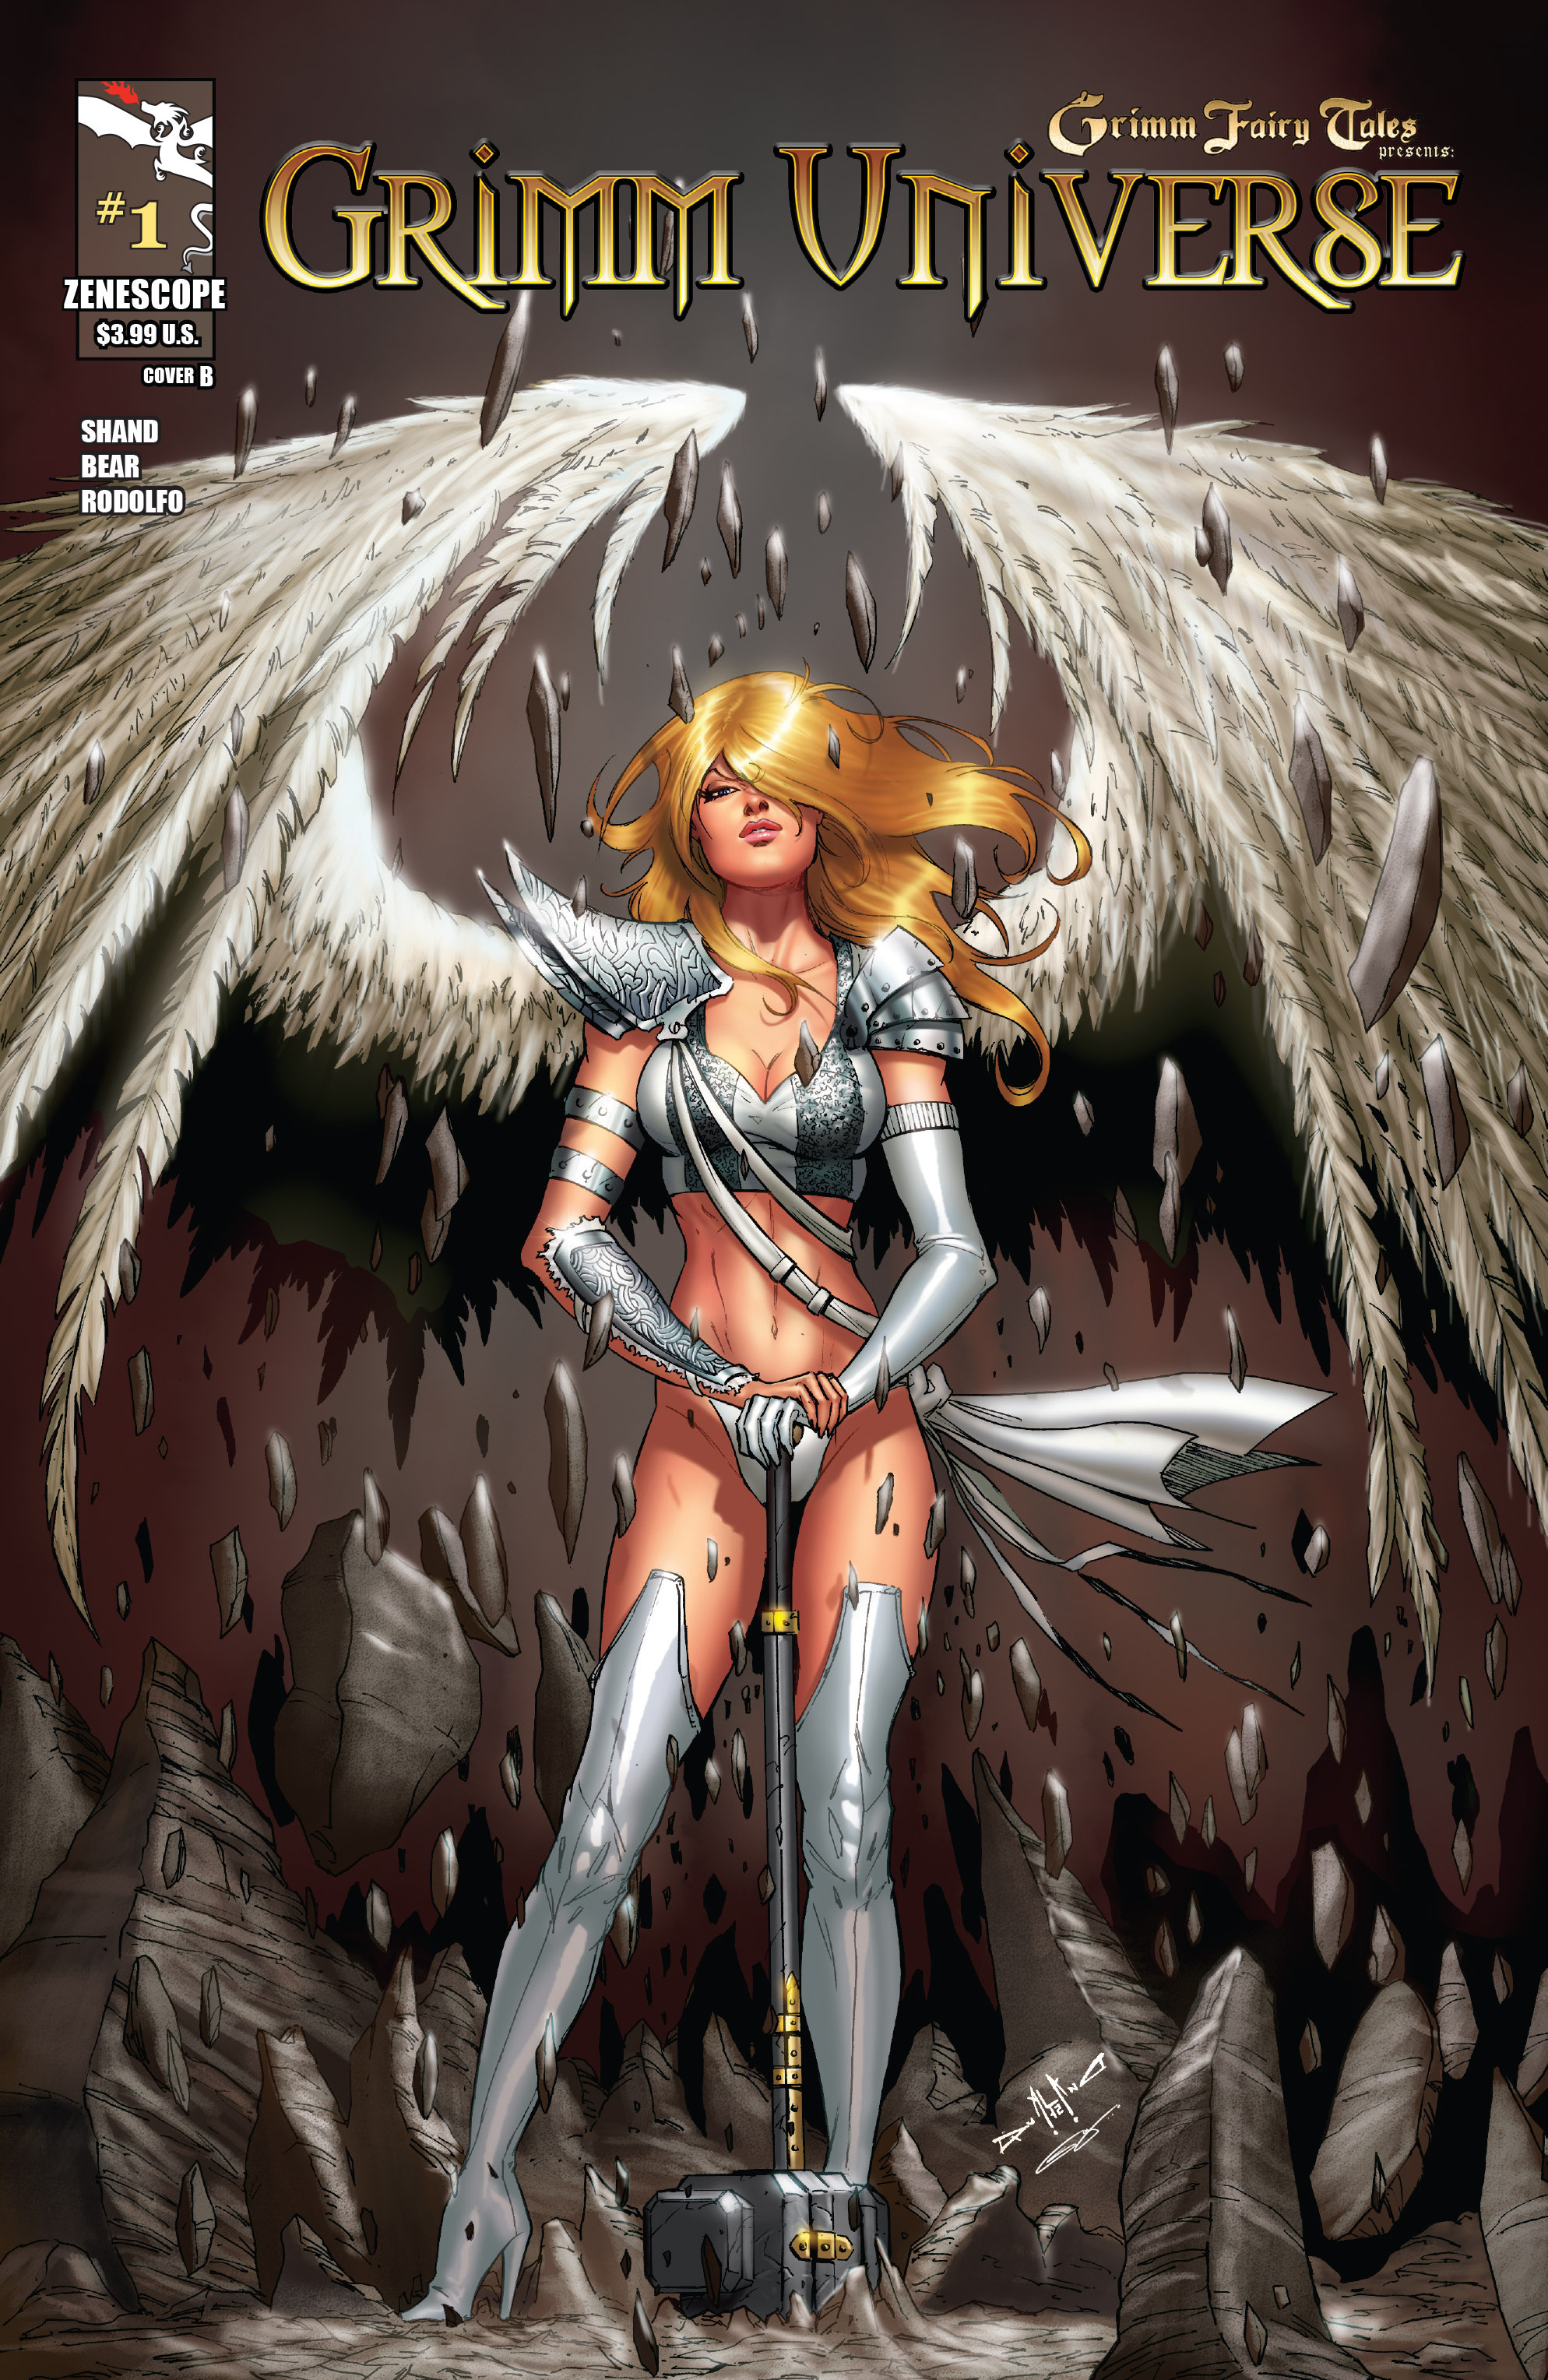 Read online Grimm Fairy Tales presents Grimm Universe comic -  Issue # TPB - 40